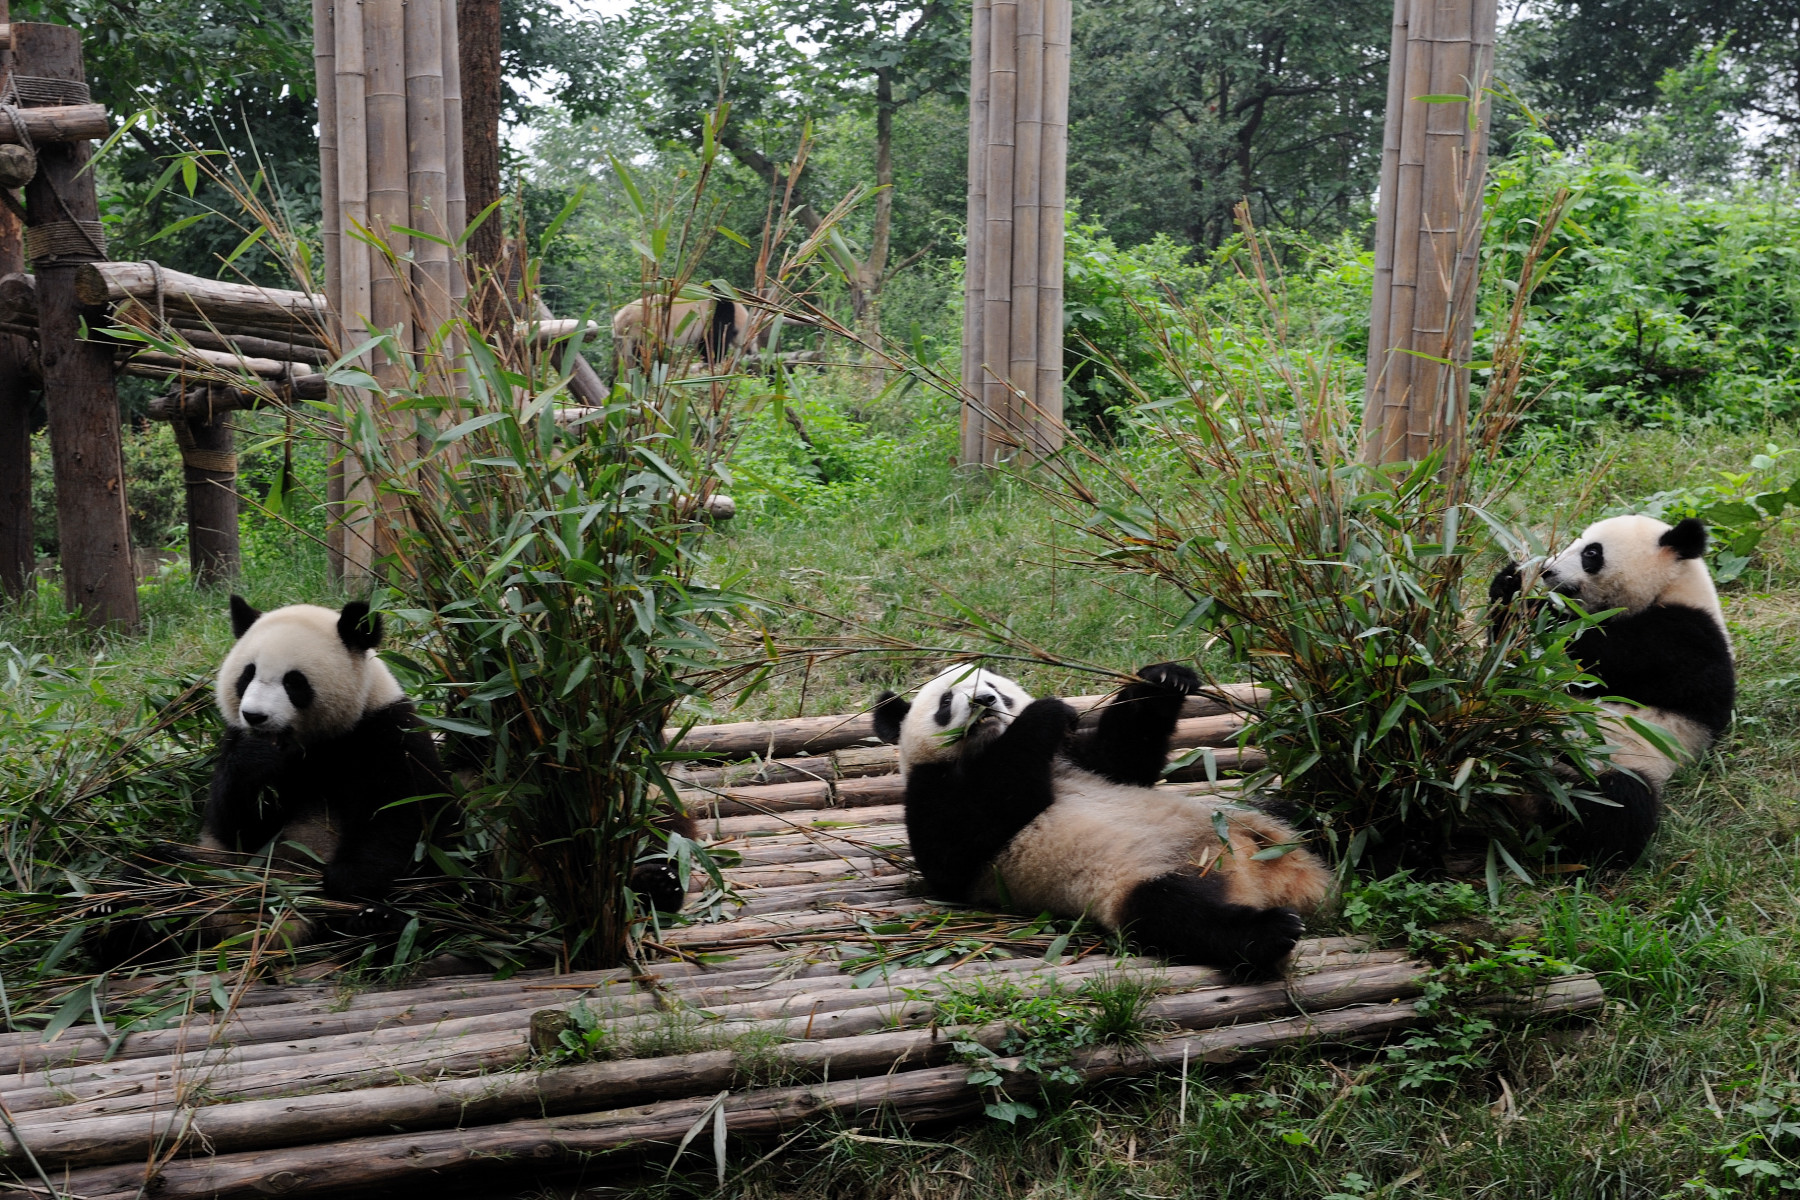 As a demonstration project, the Chengdu Panda Base has dedicated itself to giant panda conservation and made efforts to combine natural scenery and man-made landscapes to create appropriate and humane living areas for giant pandas, red pandas, and other endangered animals.